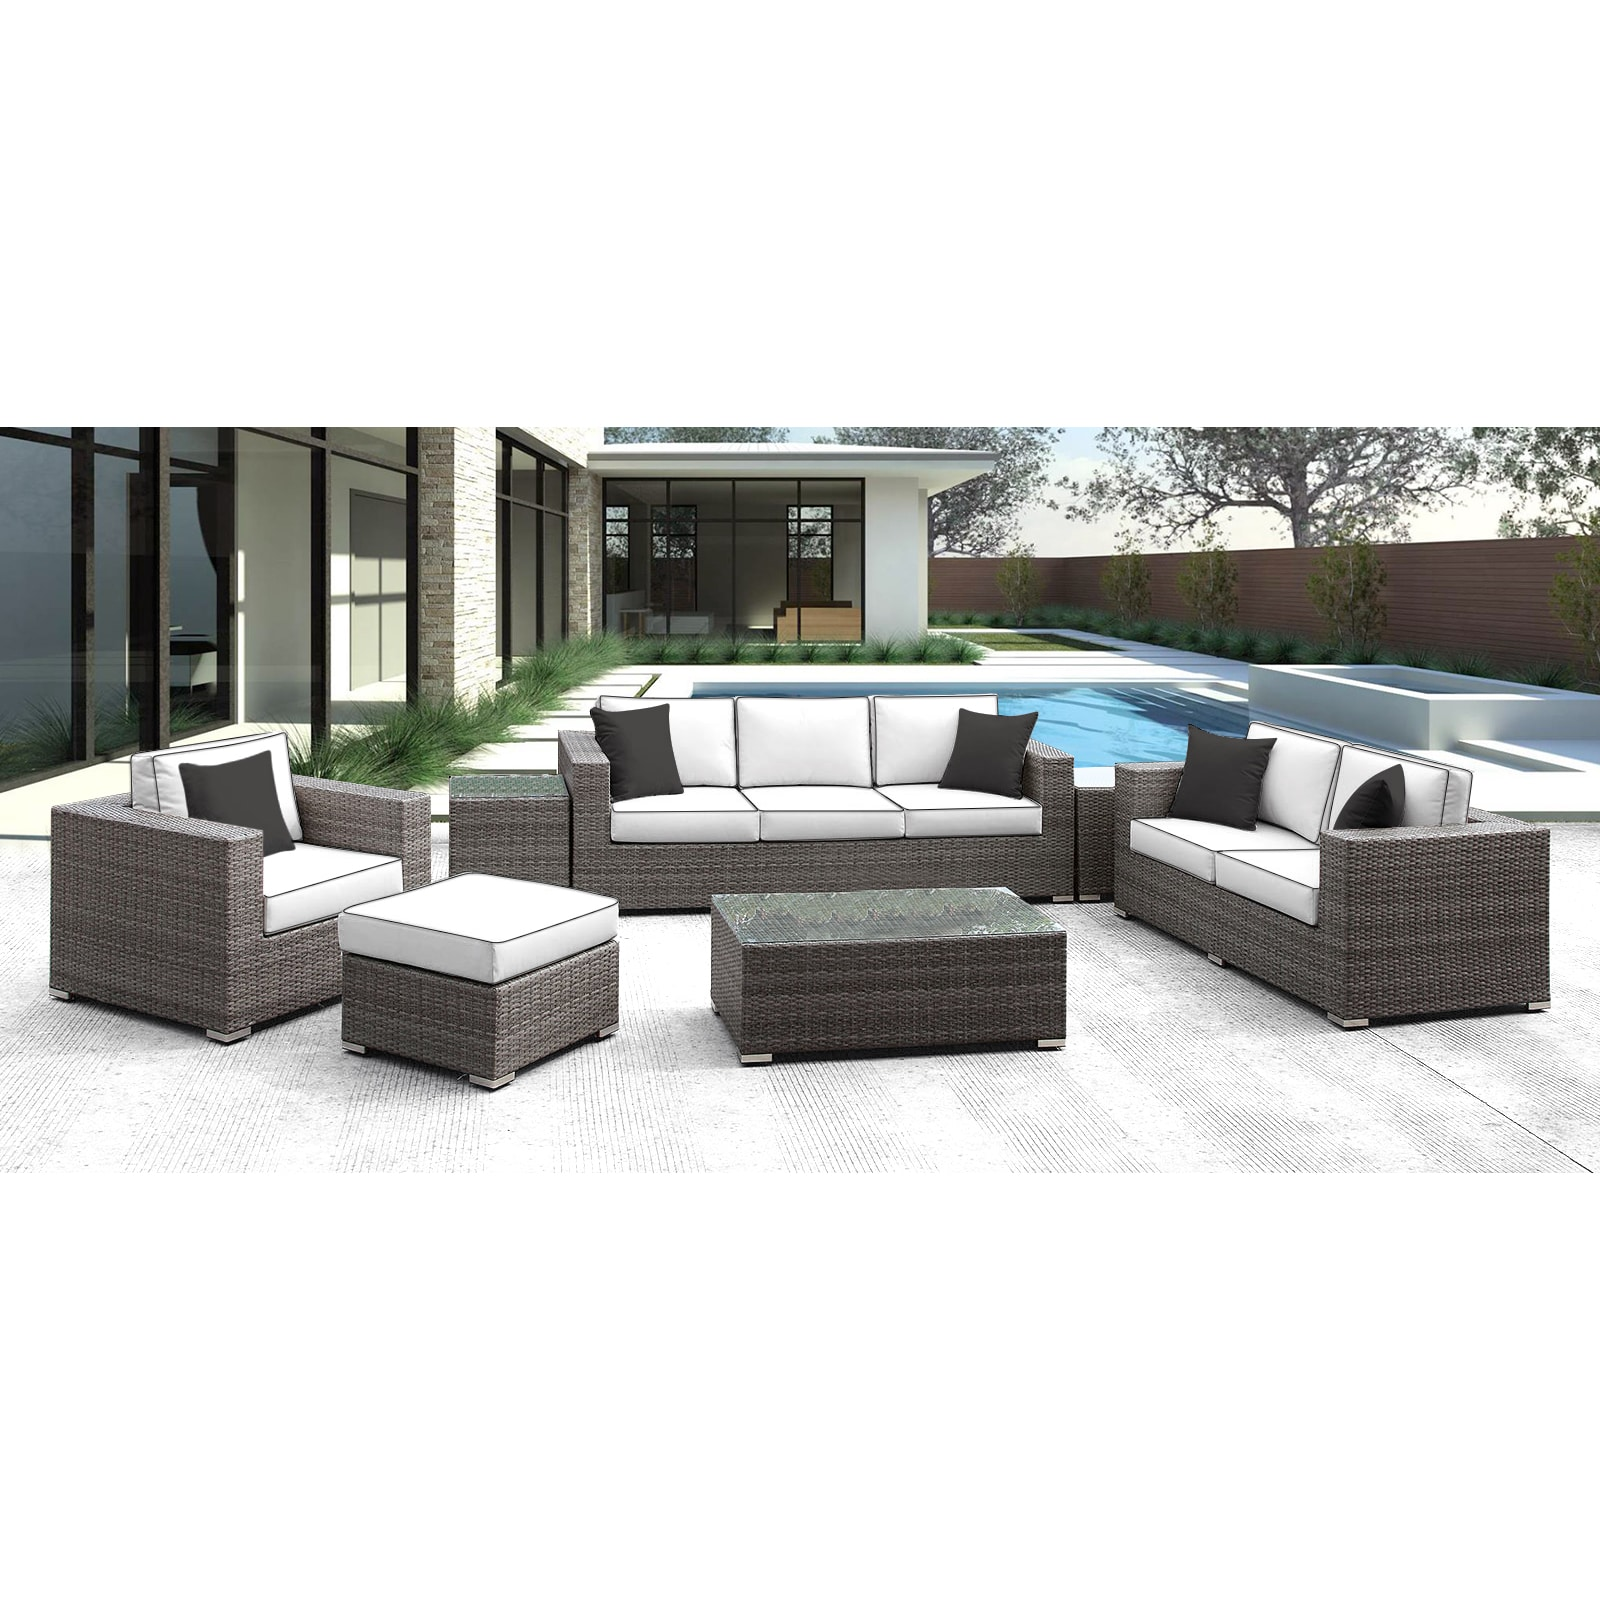 Shop Solis Lusso 7 Piece Outdoor Sofa Grey Rattan With White Cushions With Black Welting And Black Toss Pillows Overstock 13391771